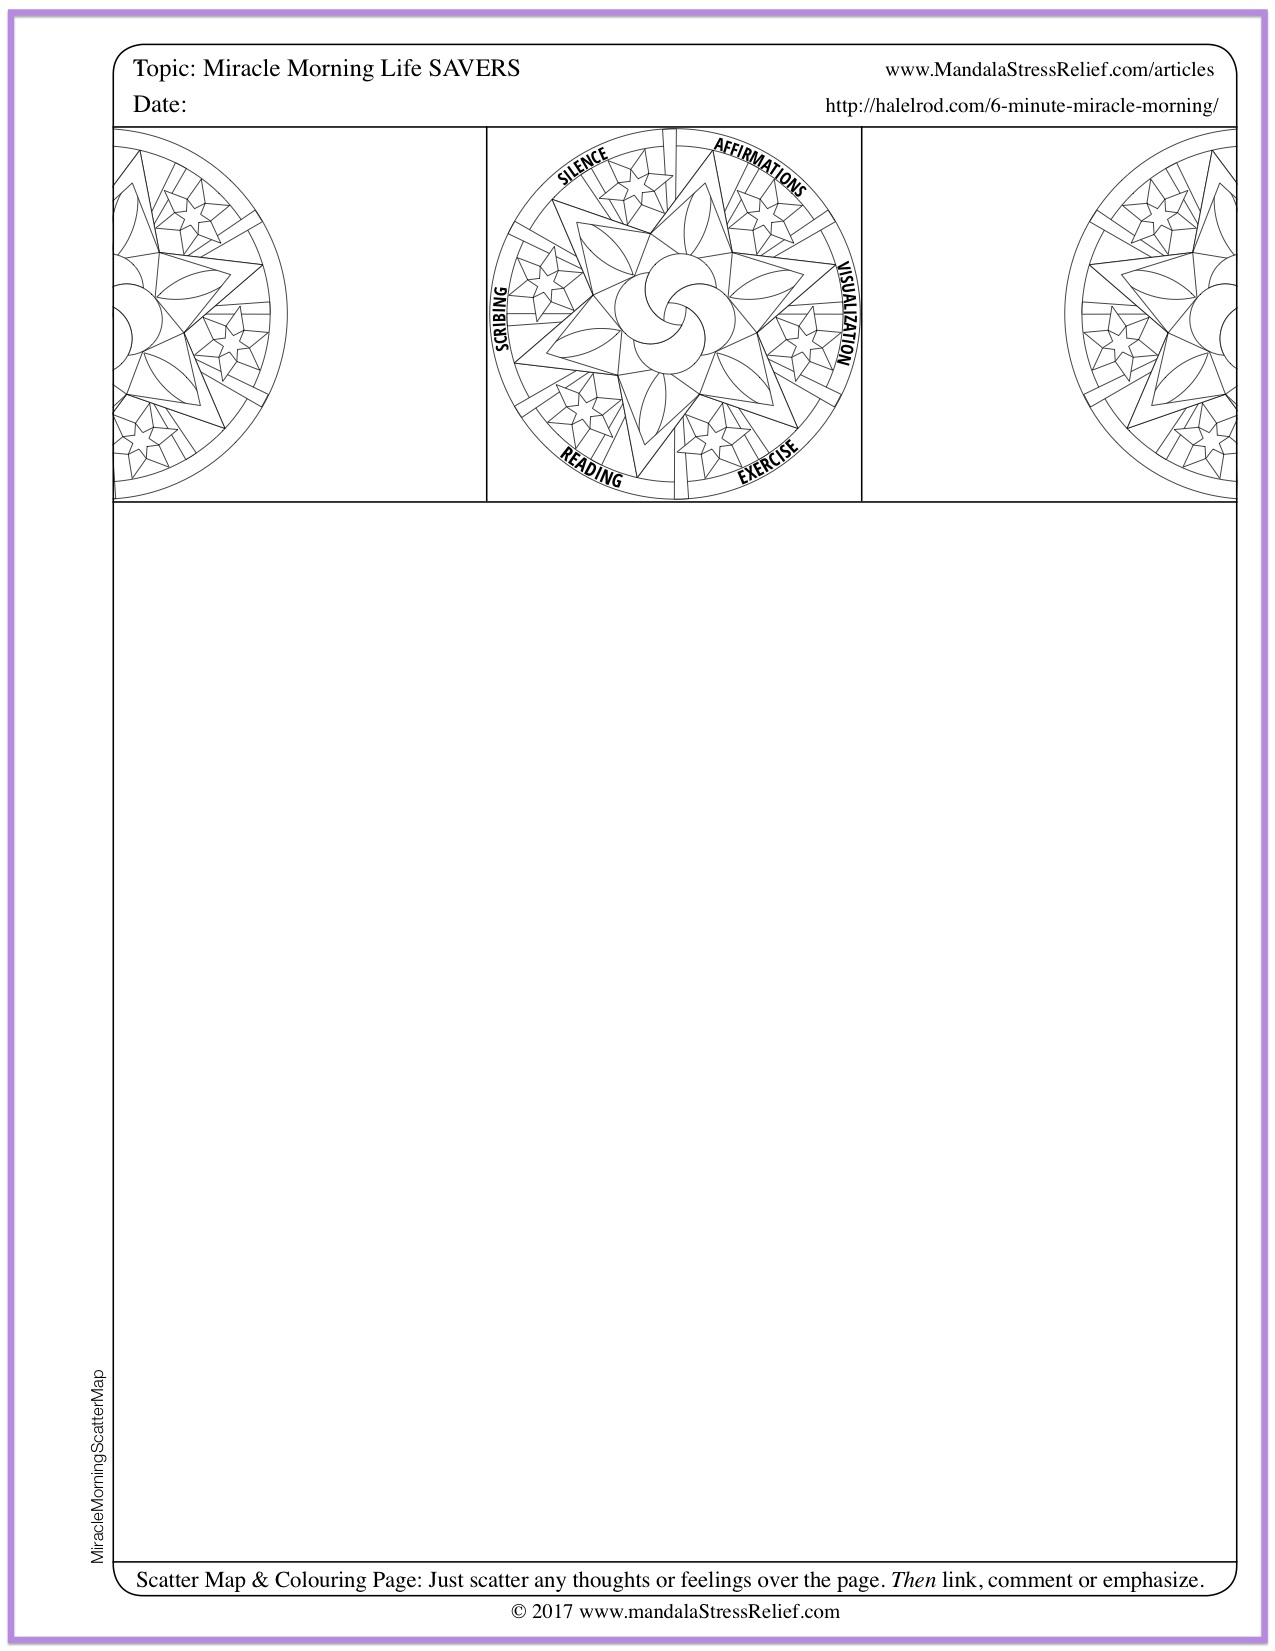 """Download a Miracle Morning """"cheat sheet summary""""  in the form of a Scatter Map & Colouring Page you can use to make for your own notes."""